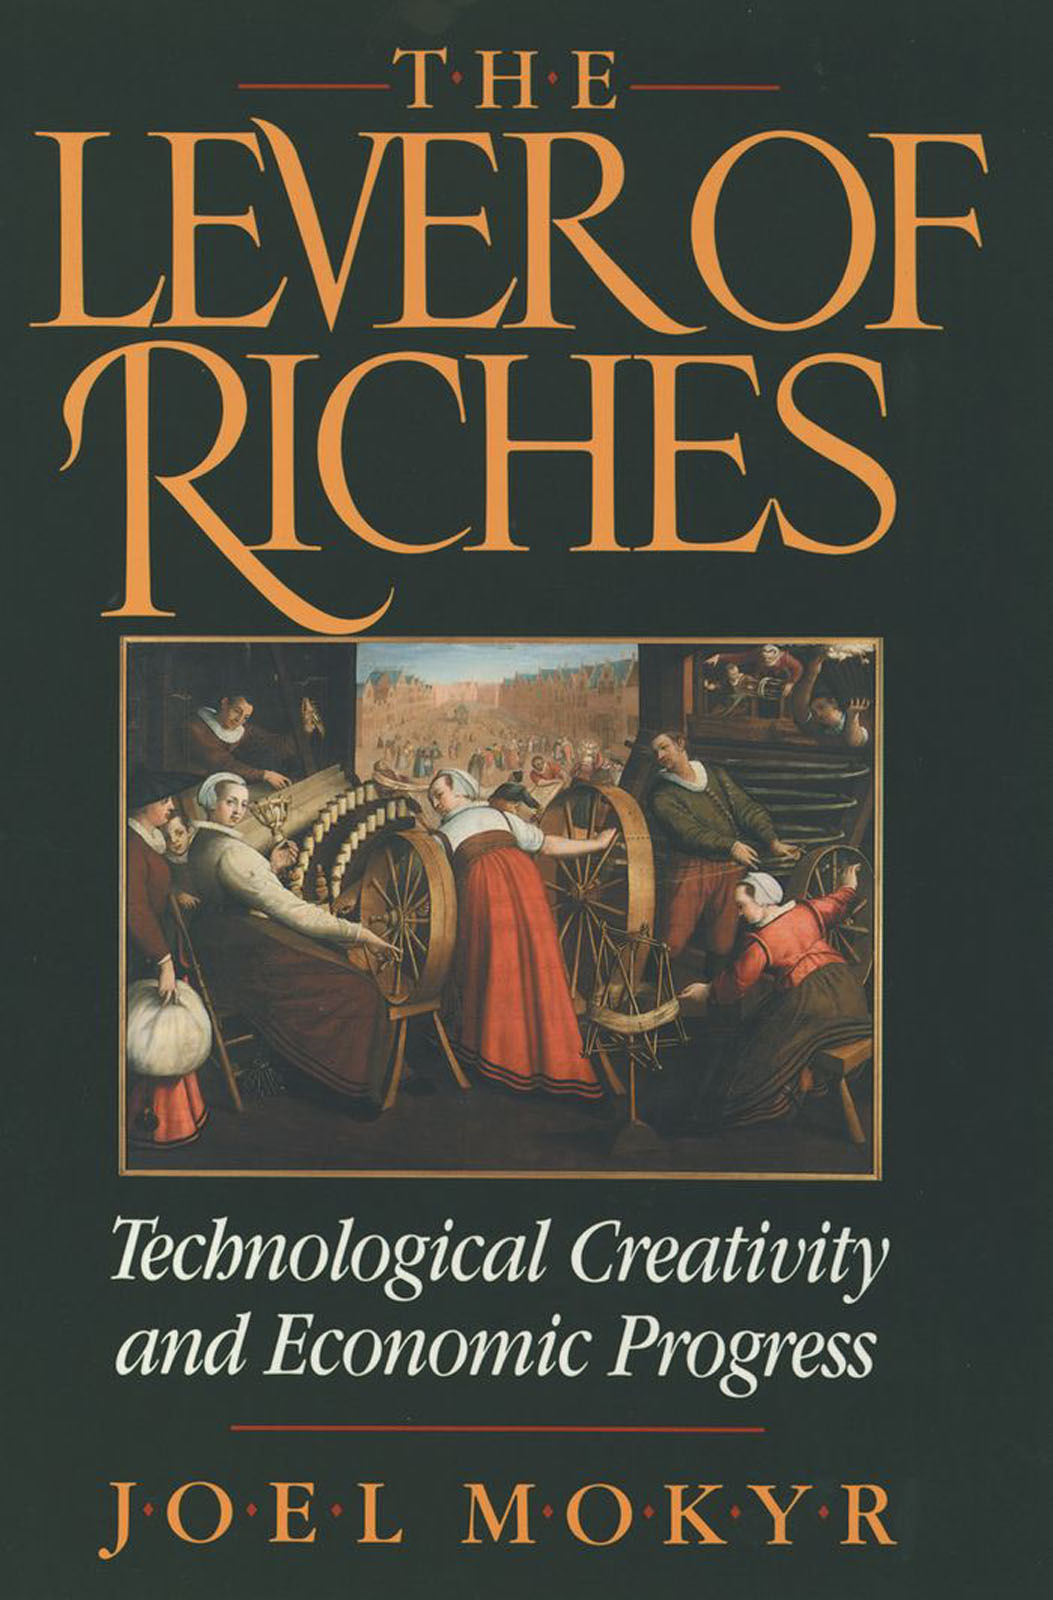 The Lever of Riches:Technological Creativity and Economic Progress